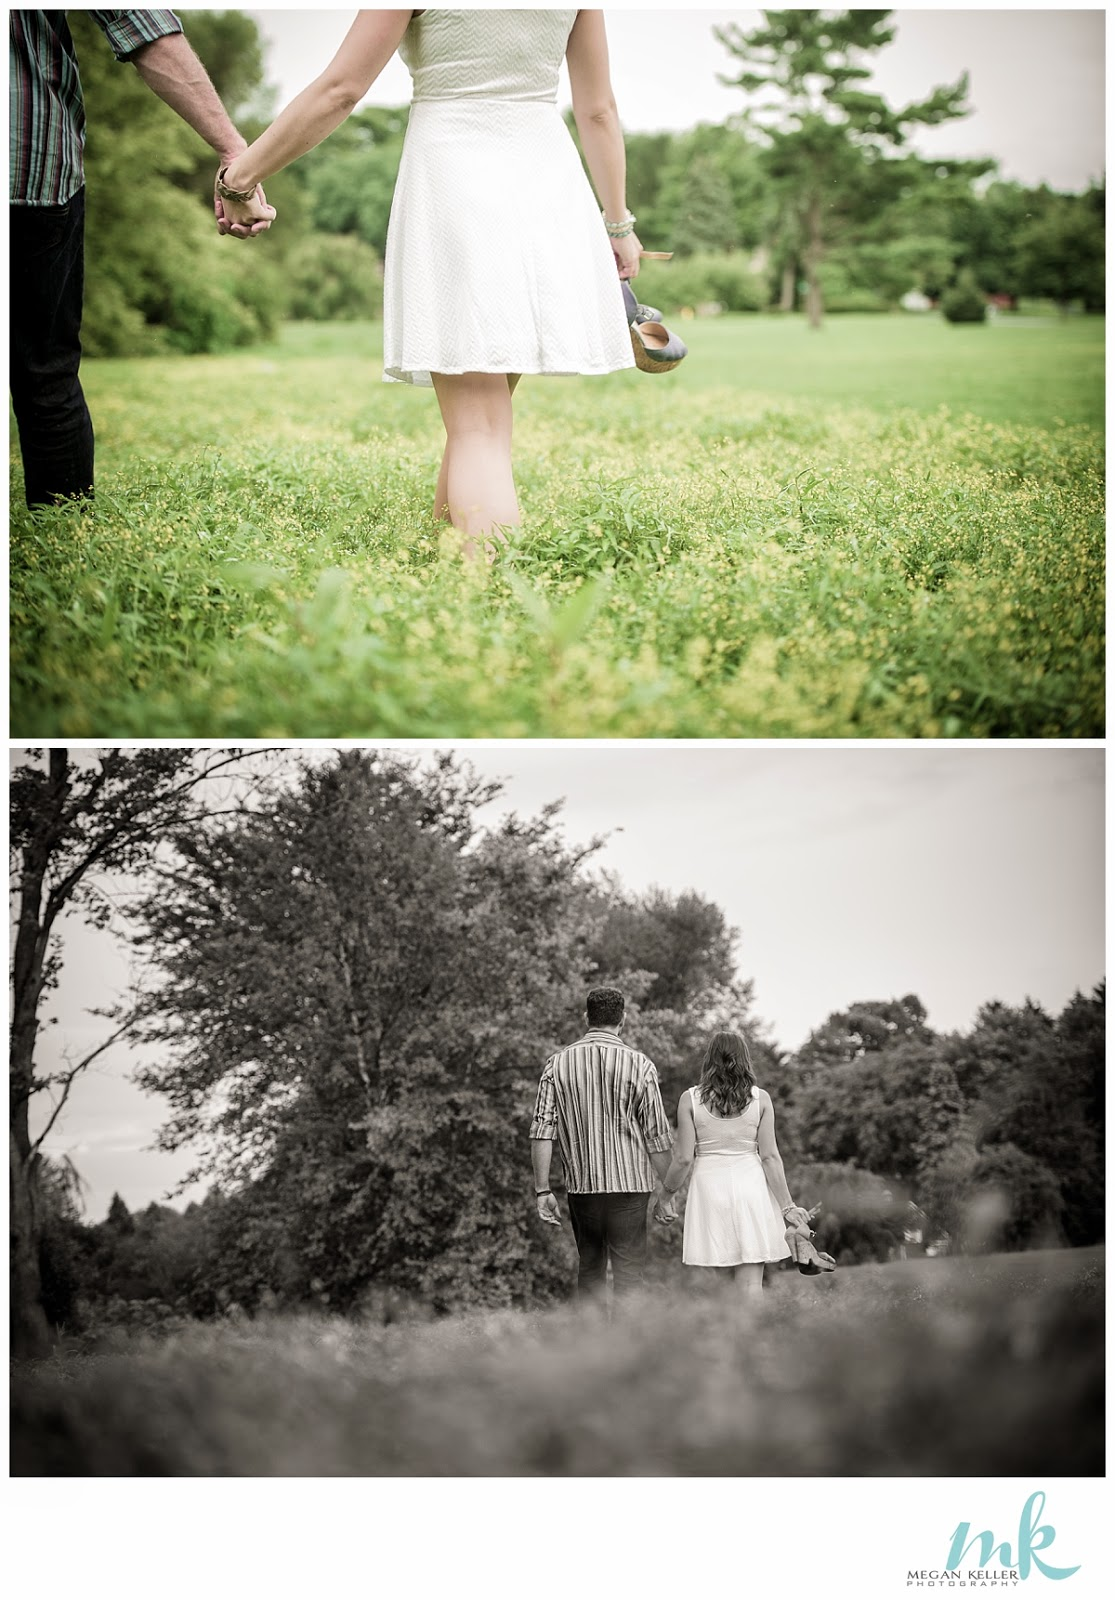 Lauren and Patrick Engagement Session Lauren and Patrick Engagement Session 2014 08 02 0017